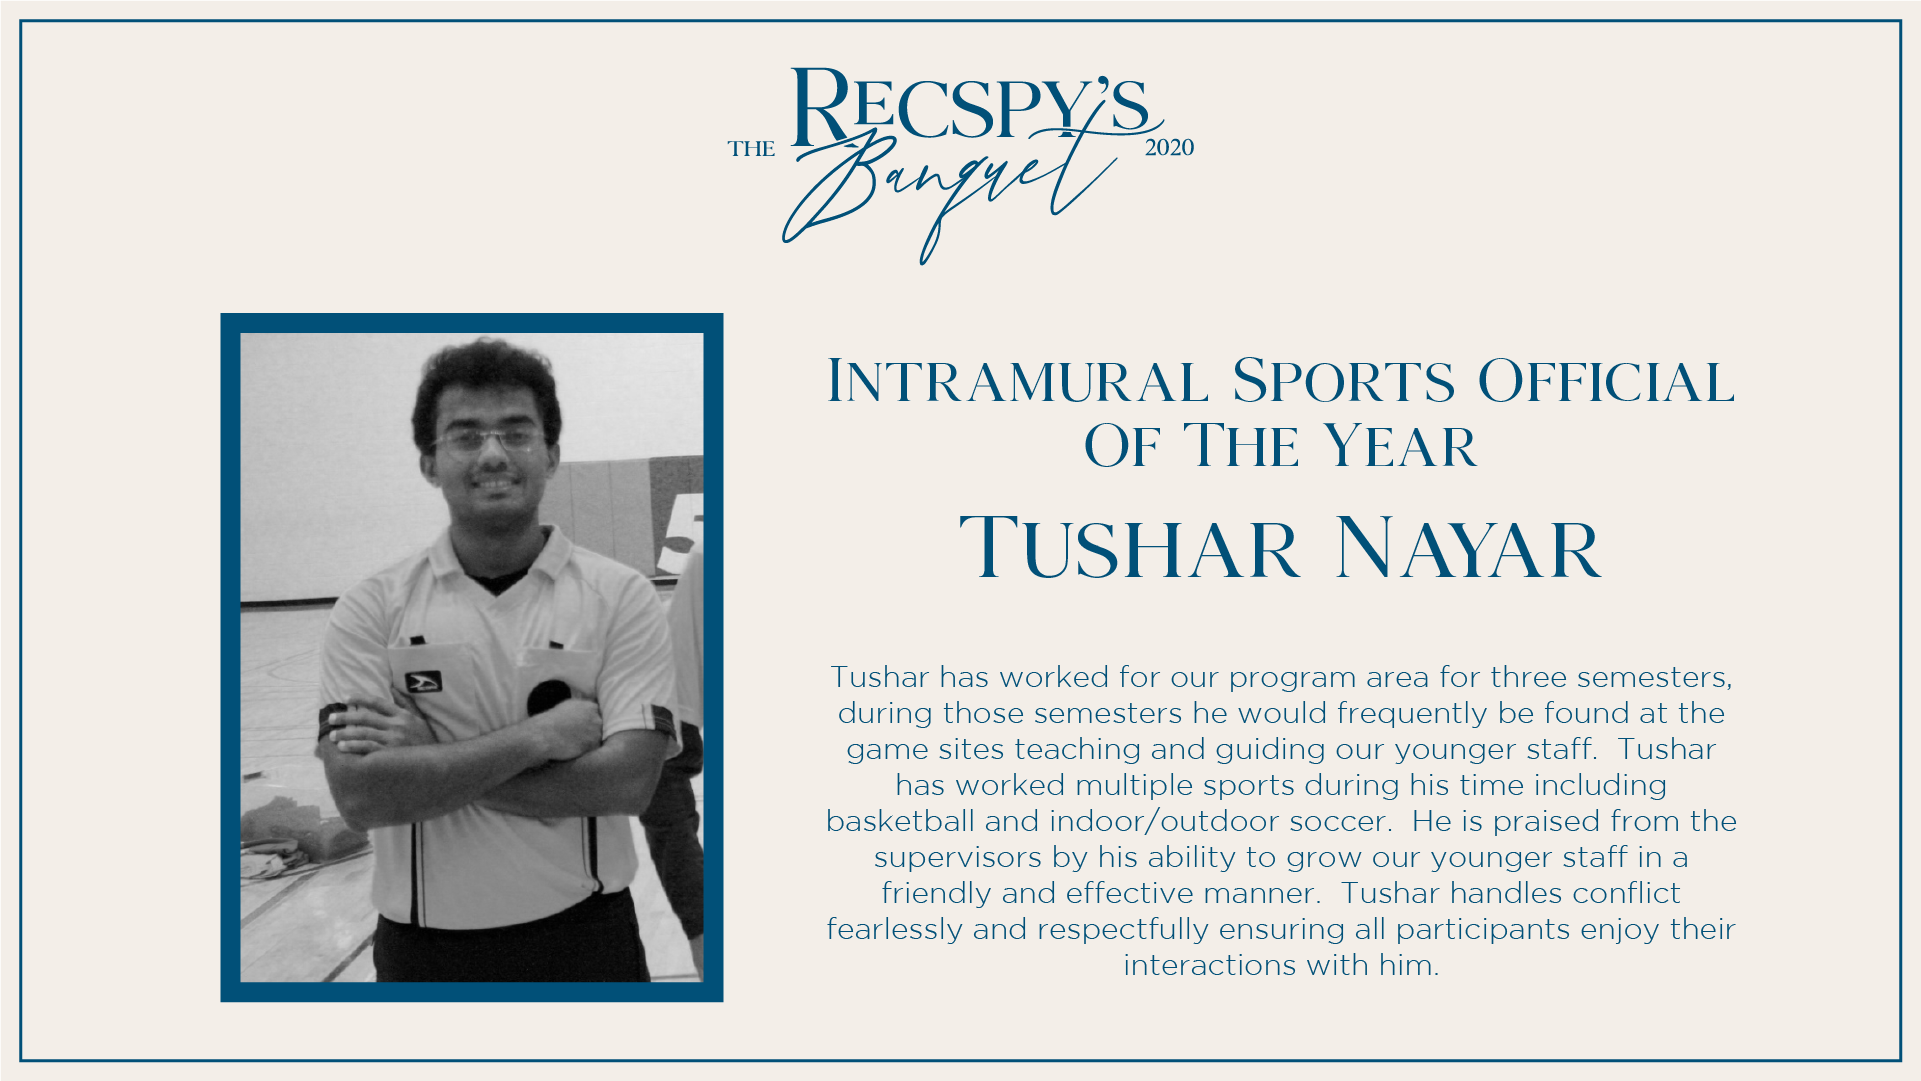 Tushar Nayar: Intramural Sports Official of the Year